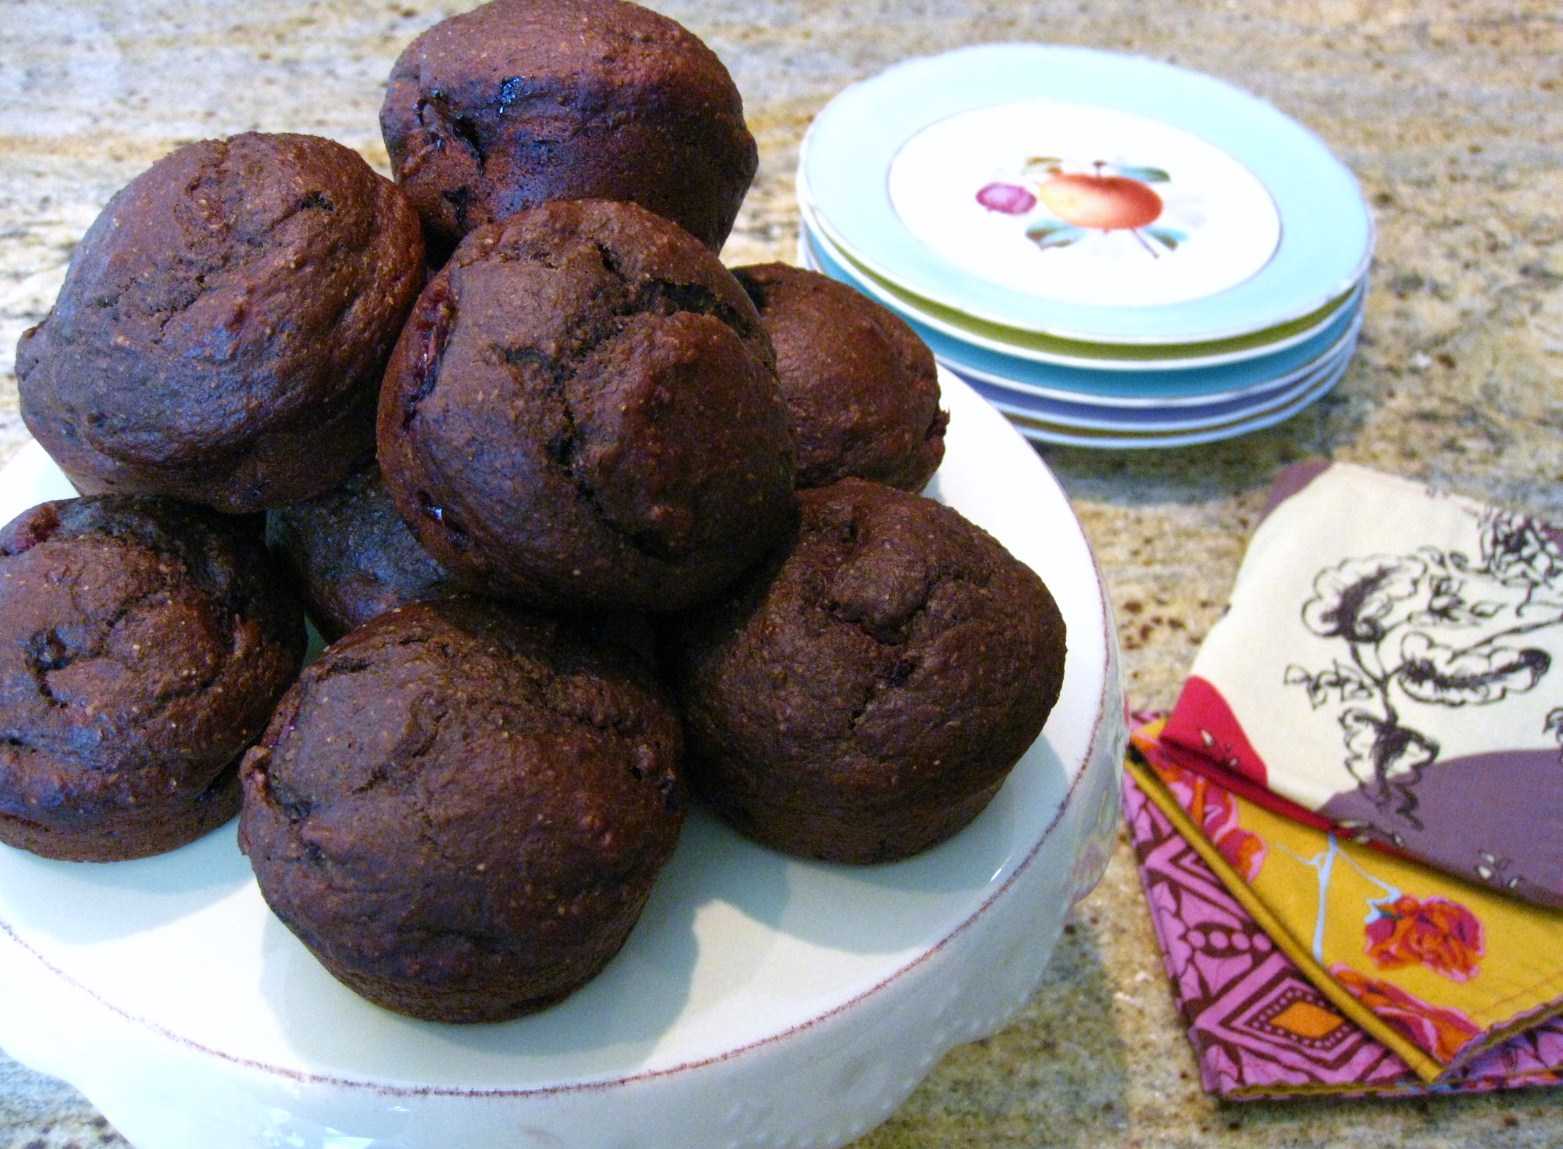 Cara's Cravings » Double Chocolate Cherry & Goat Cheese Muffins